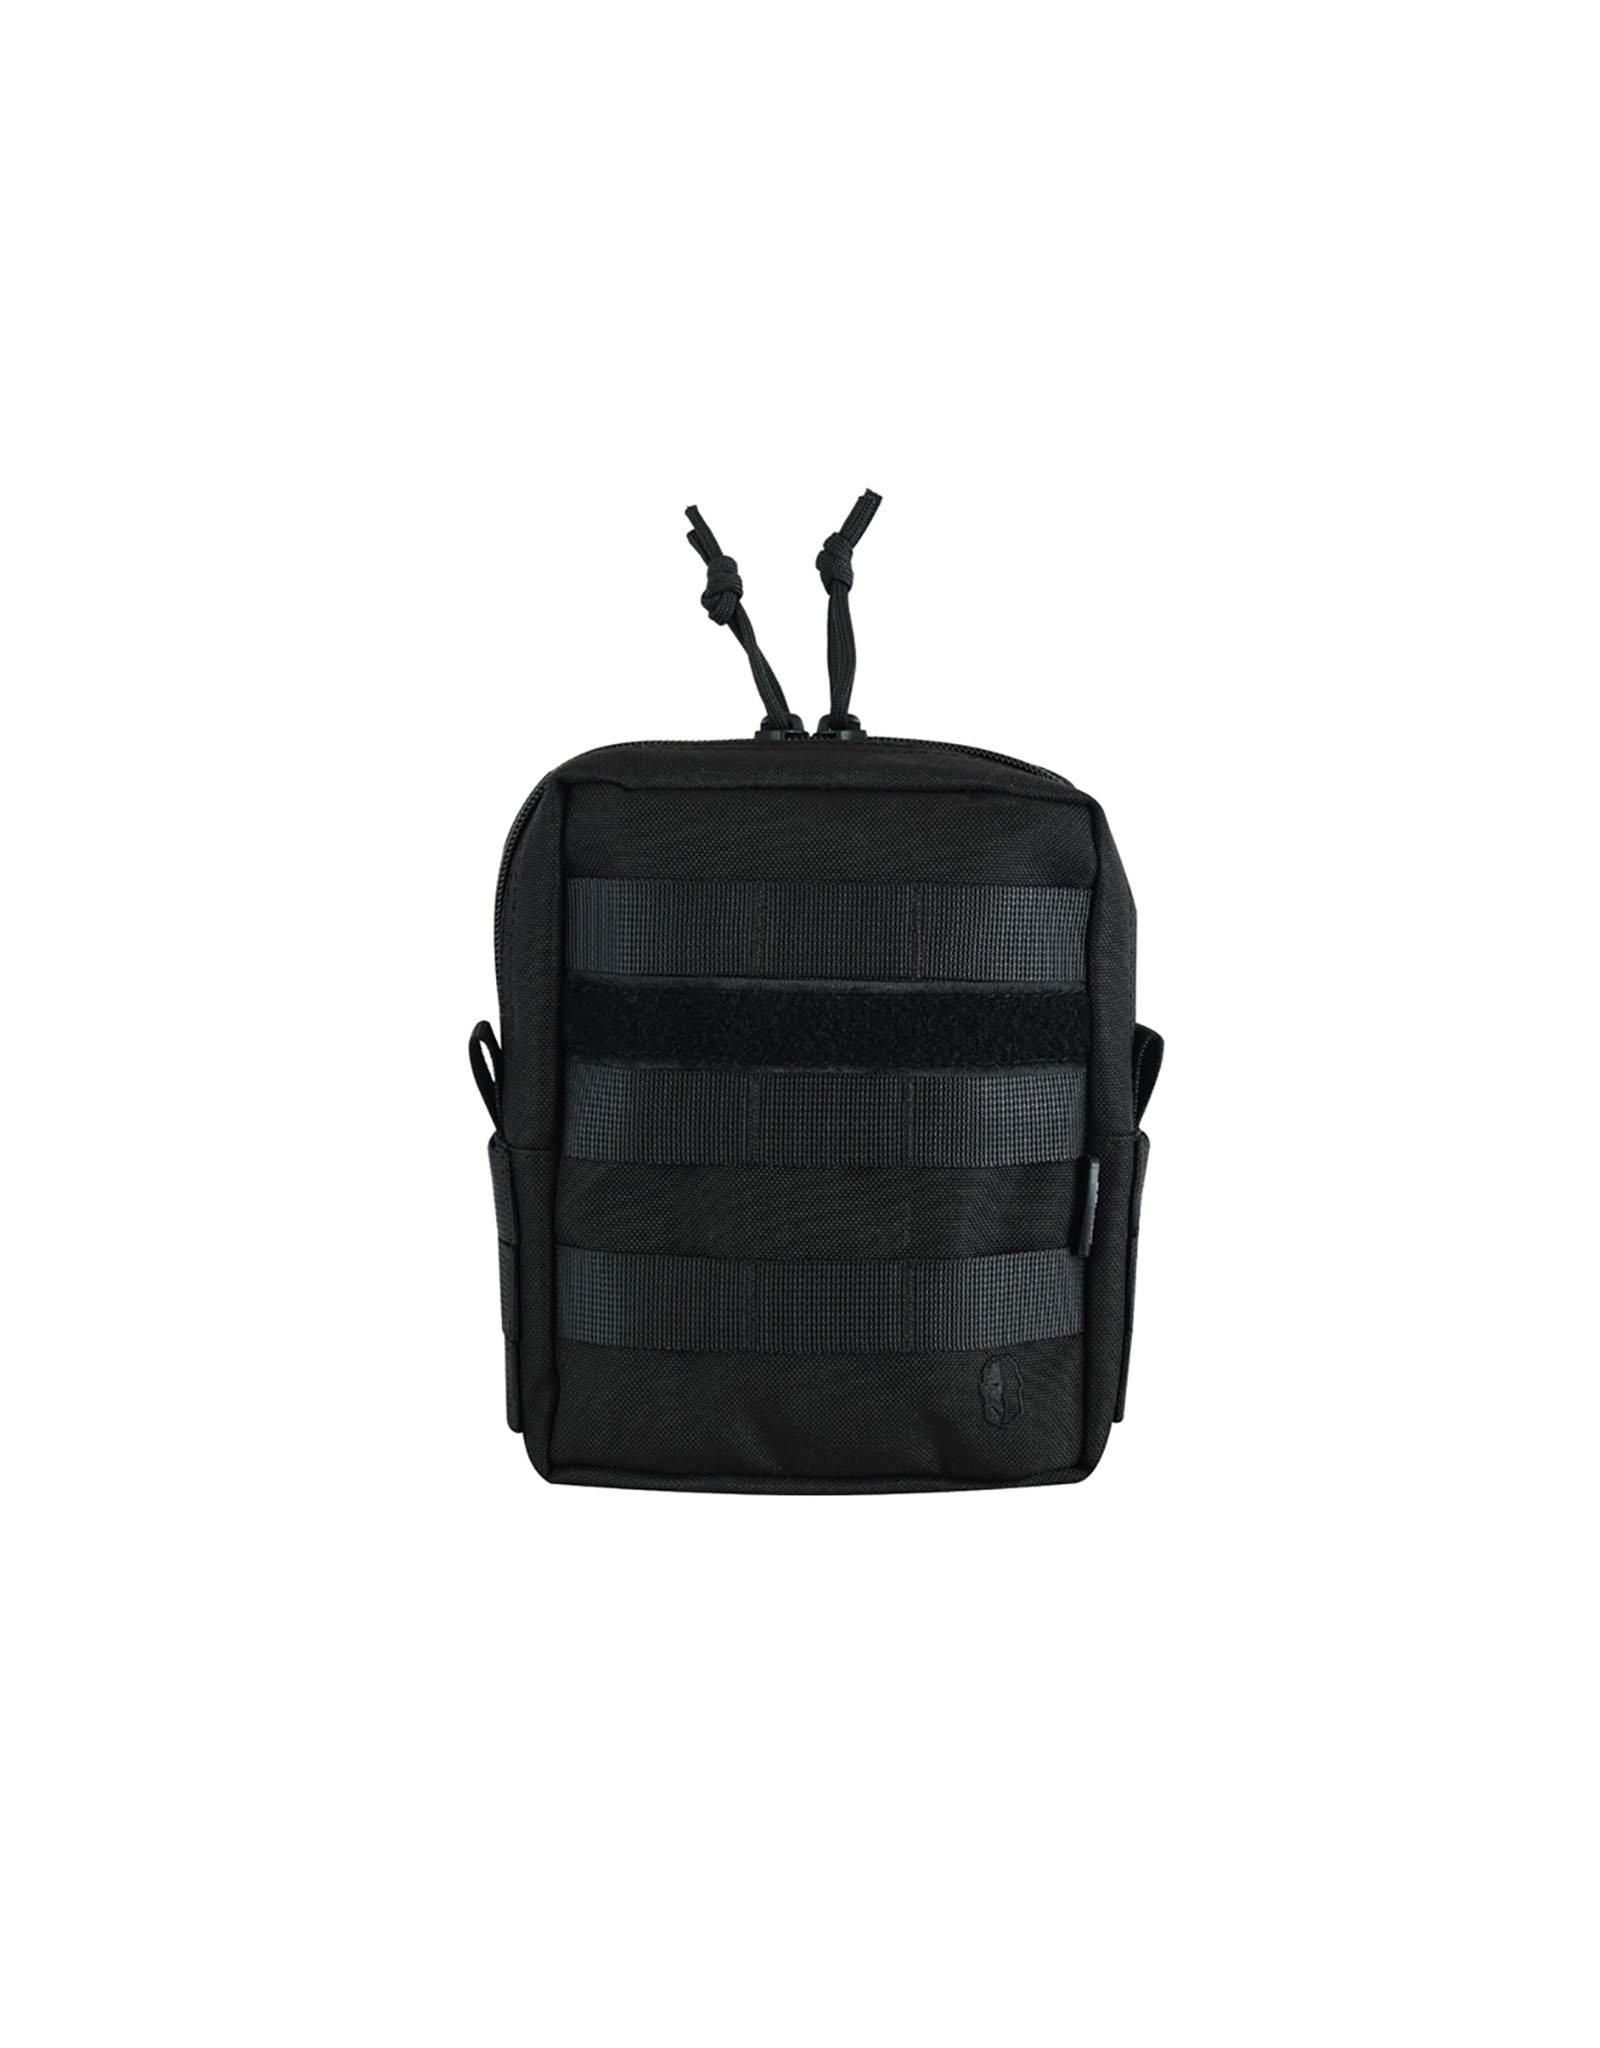 SHADOW STRATEGIC LARGE UTILITY POUCH